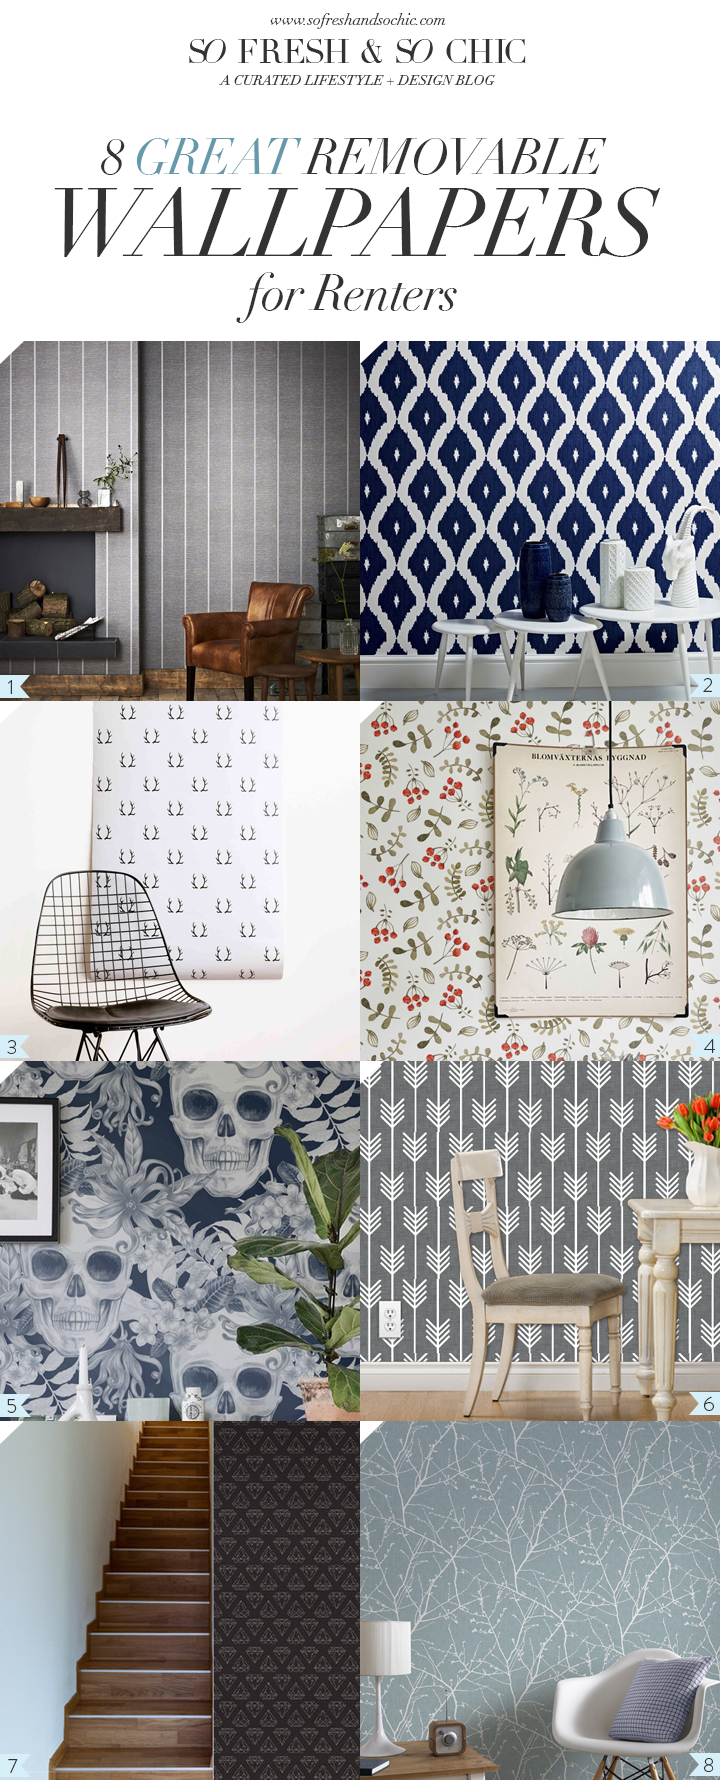 For the Home] 8 Great Removable Wallpapers for Renters - So Fresh ...